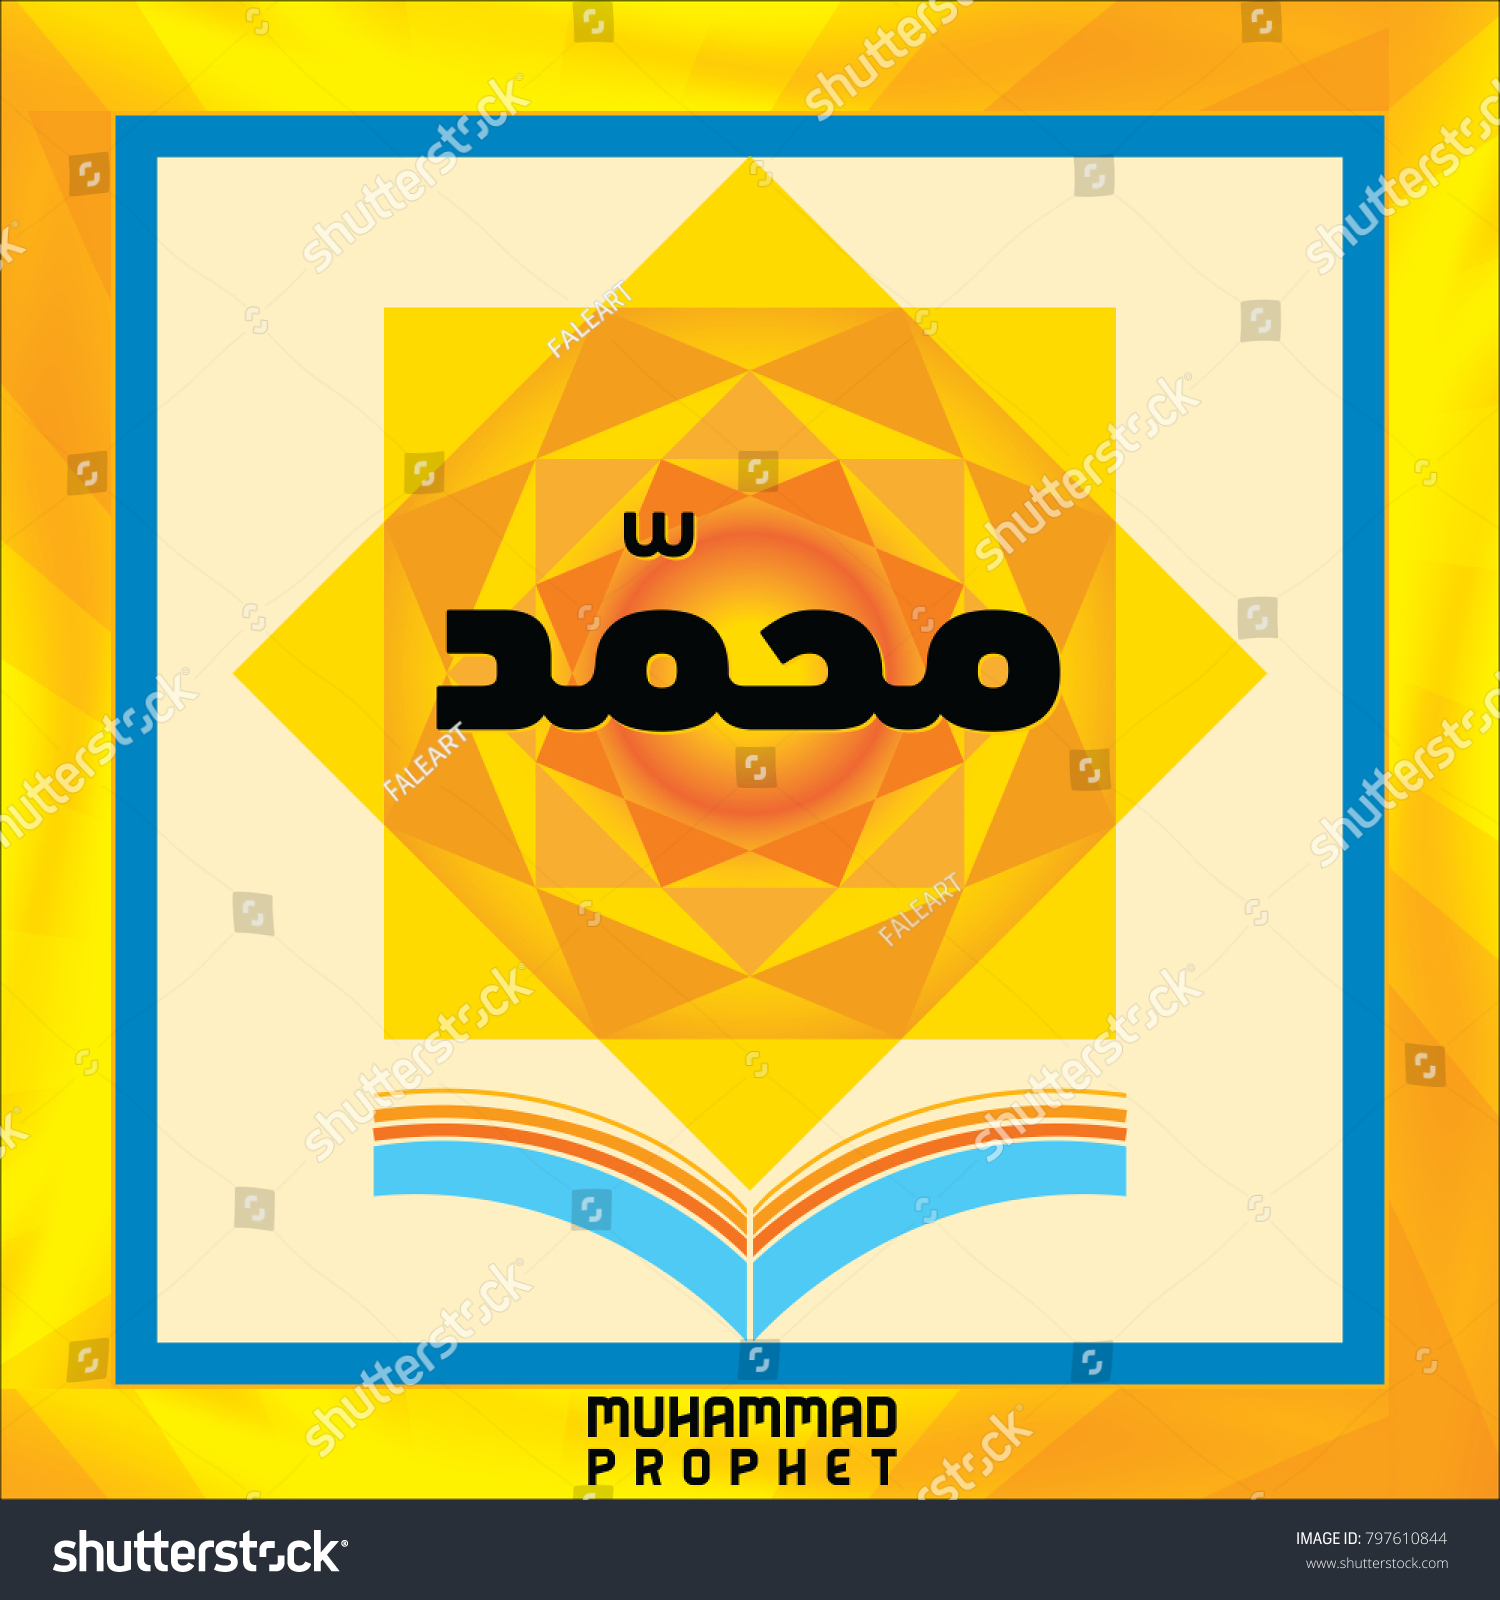 Symbol holy book quran lafadz prophet stock vector 797610844 the symbol of the holy book of the quran with the lafadz of prophet biocorpaavc Gallery